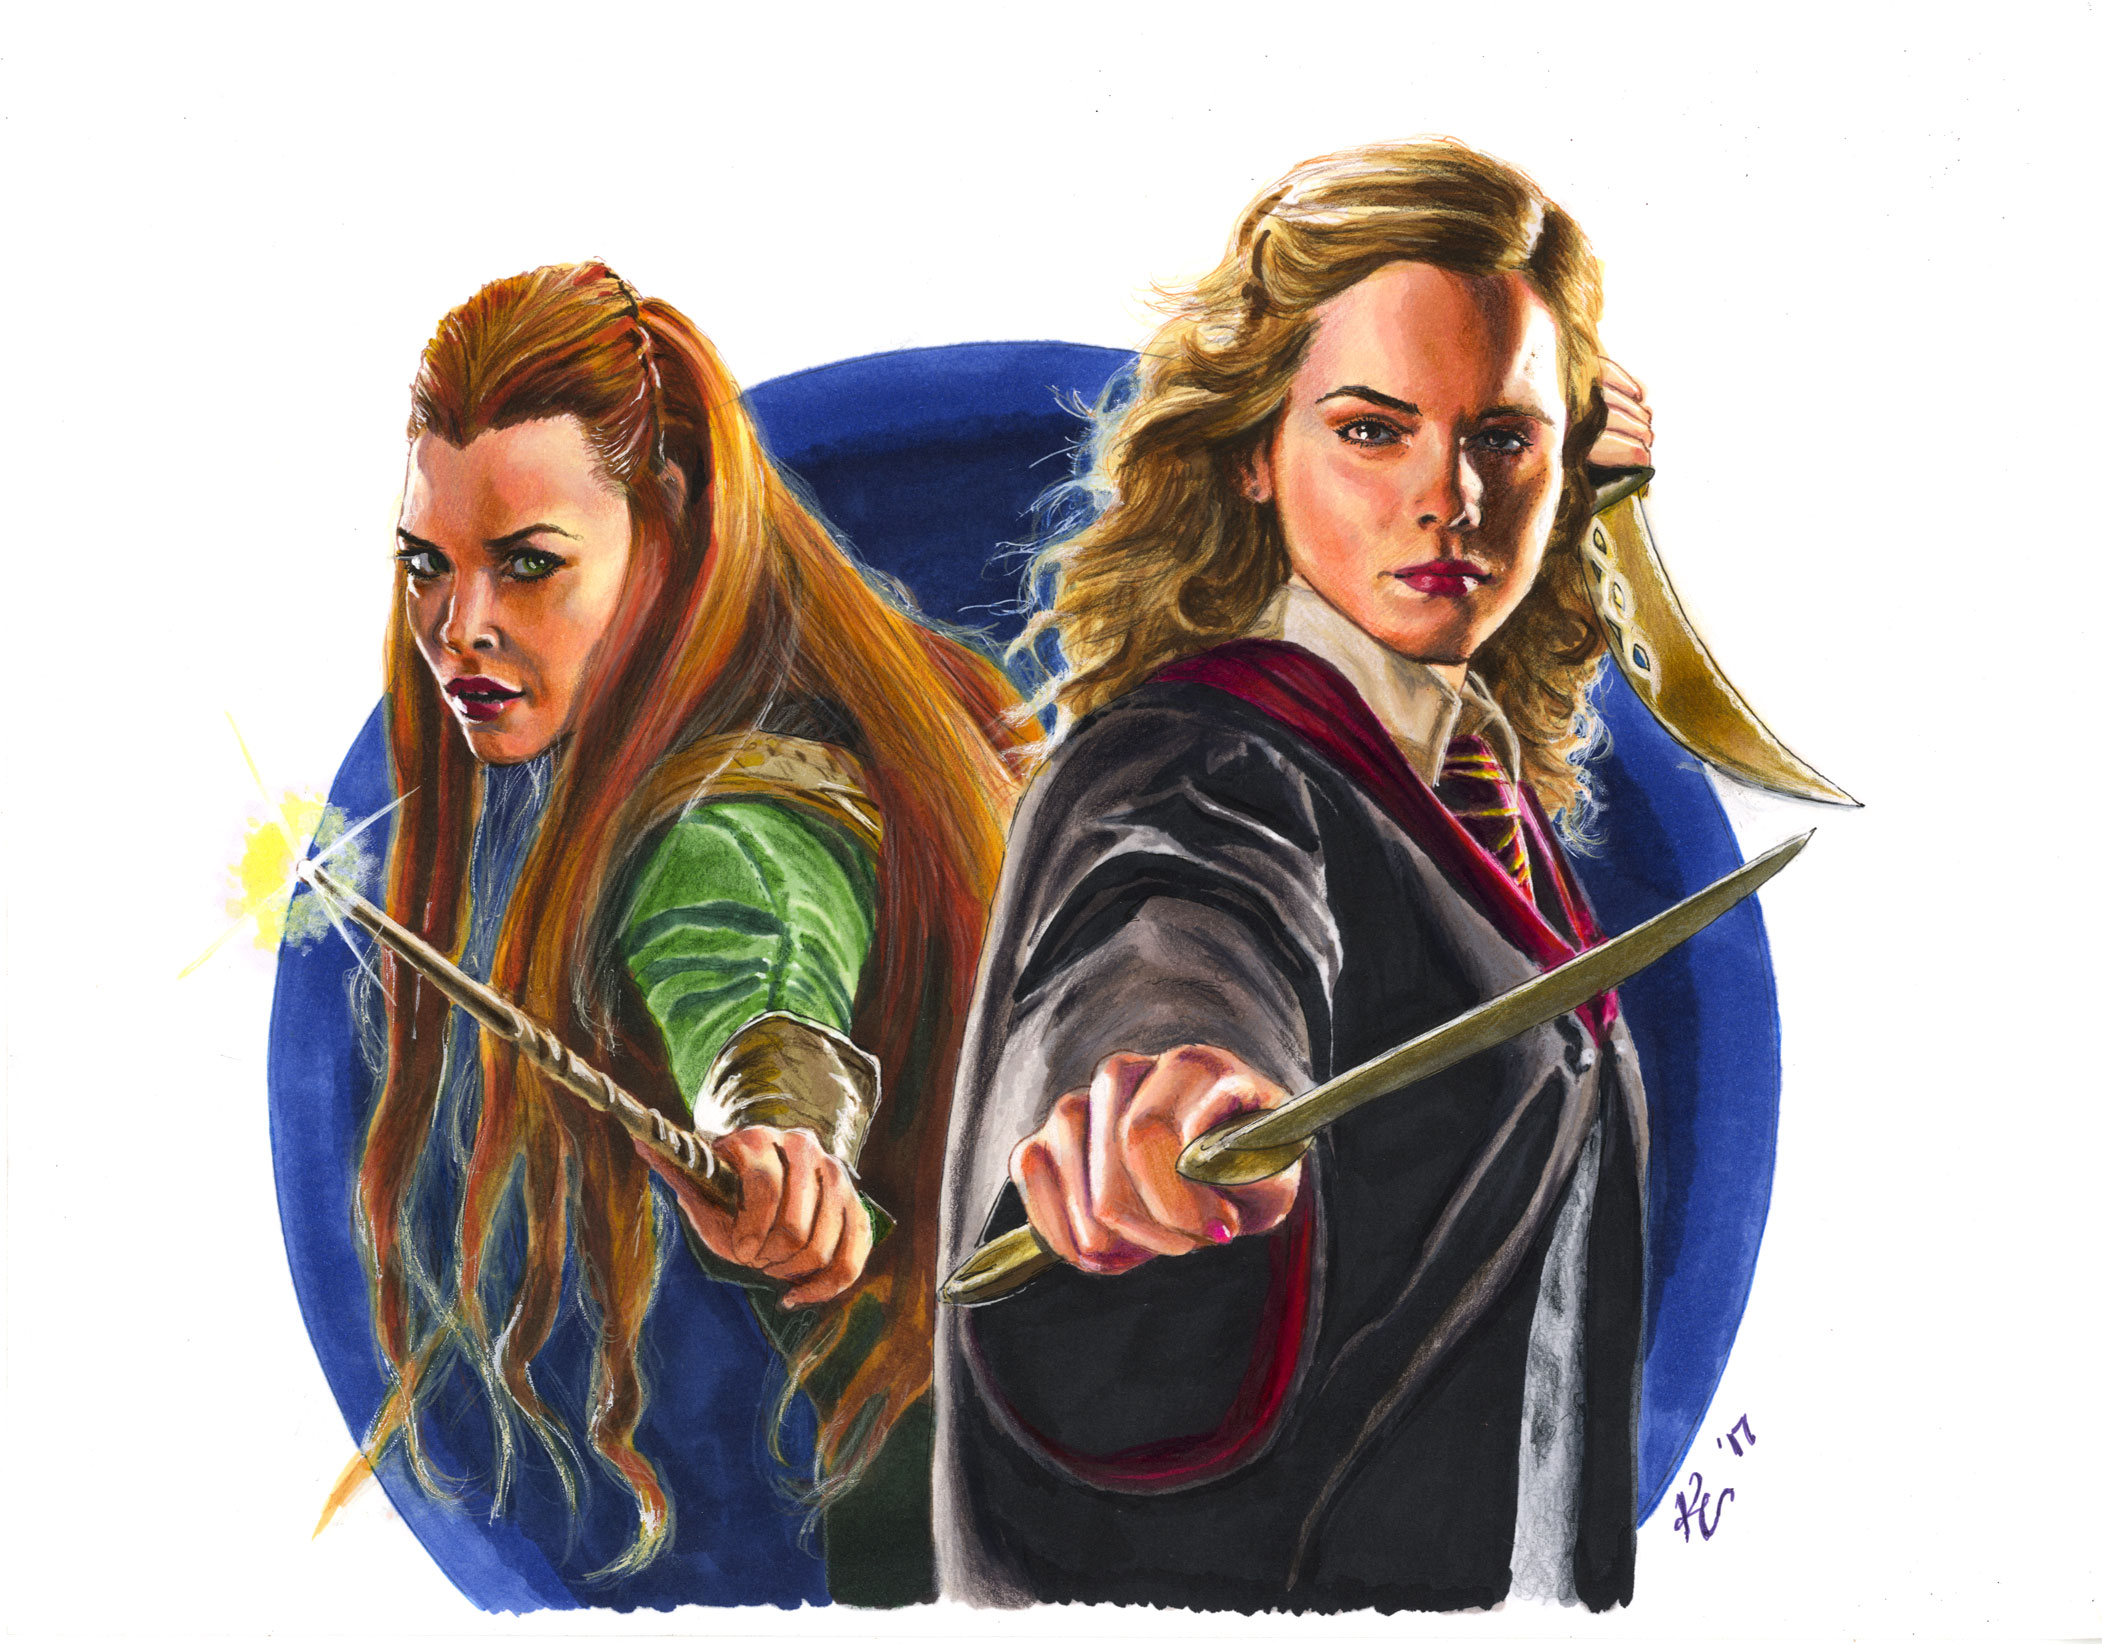 Tauriel and Hermione, friends